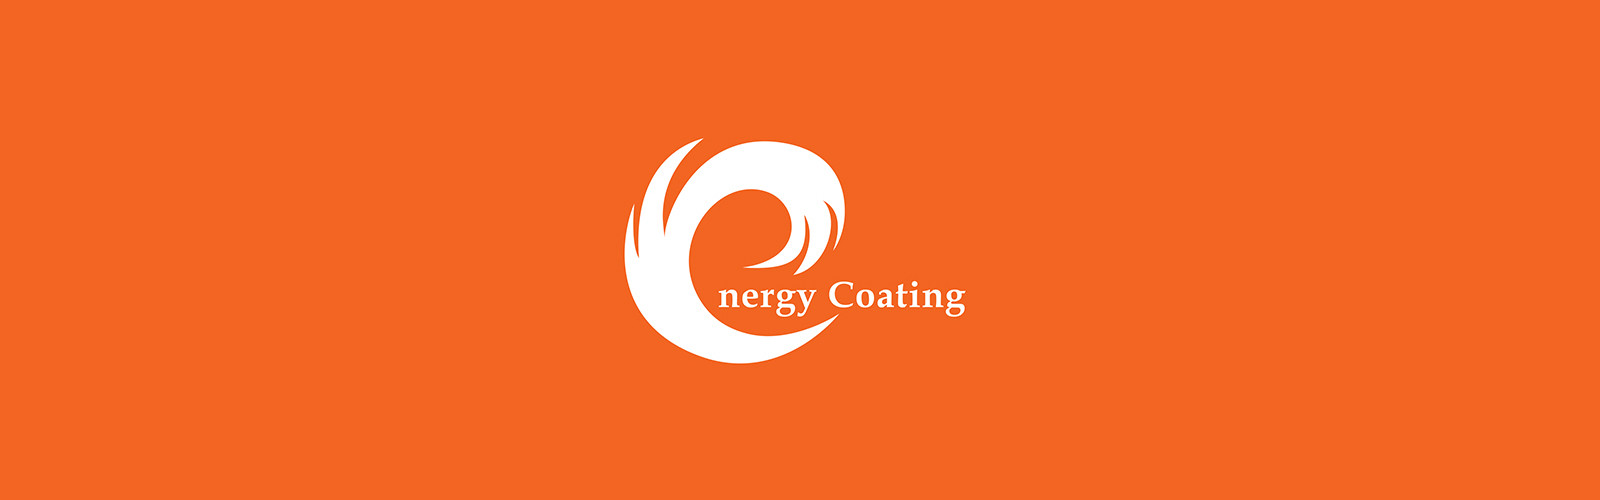 Energy Coating